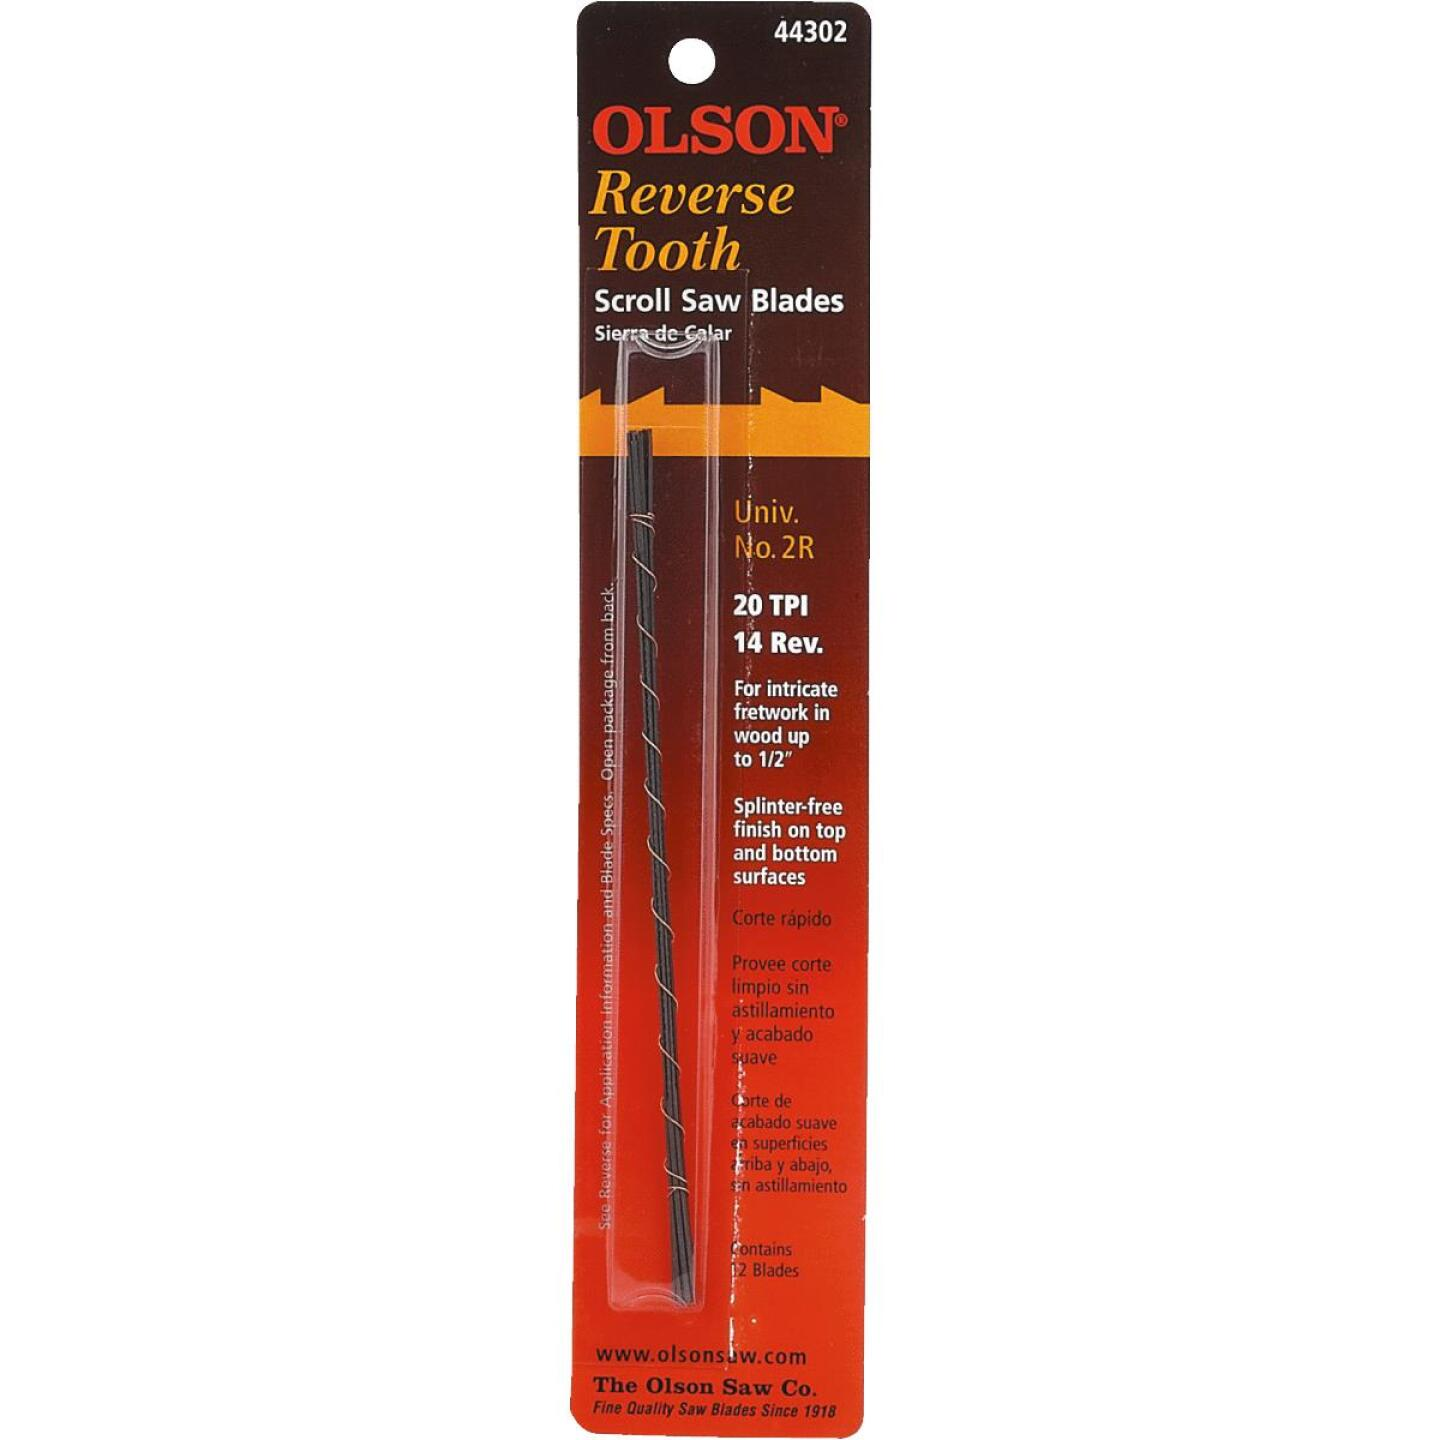 Olson 20TPI Reverse Tooth Plain End Scroll Saw Blade (12 Count) Image 2